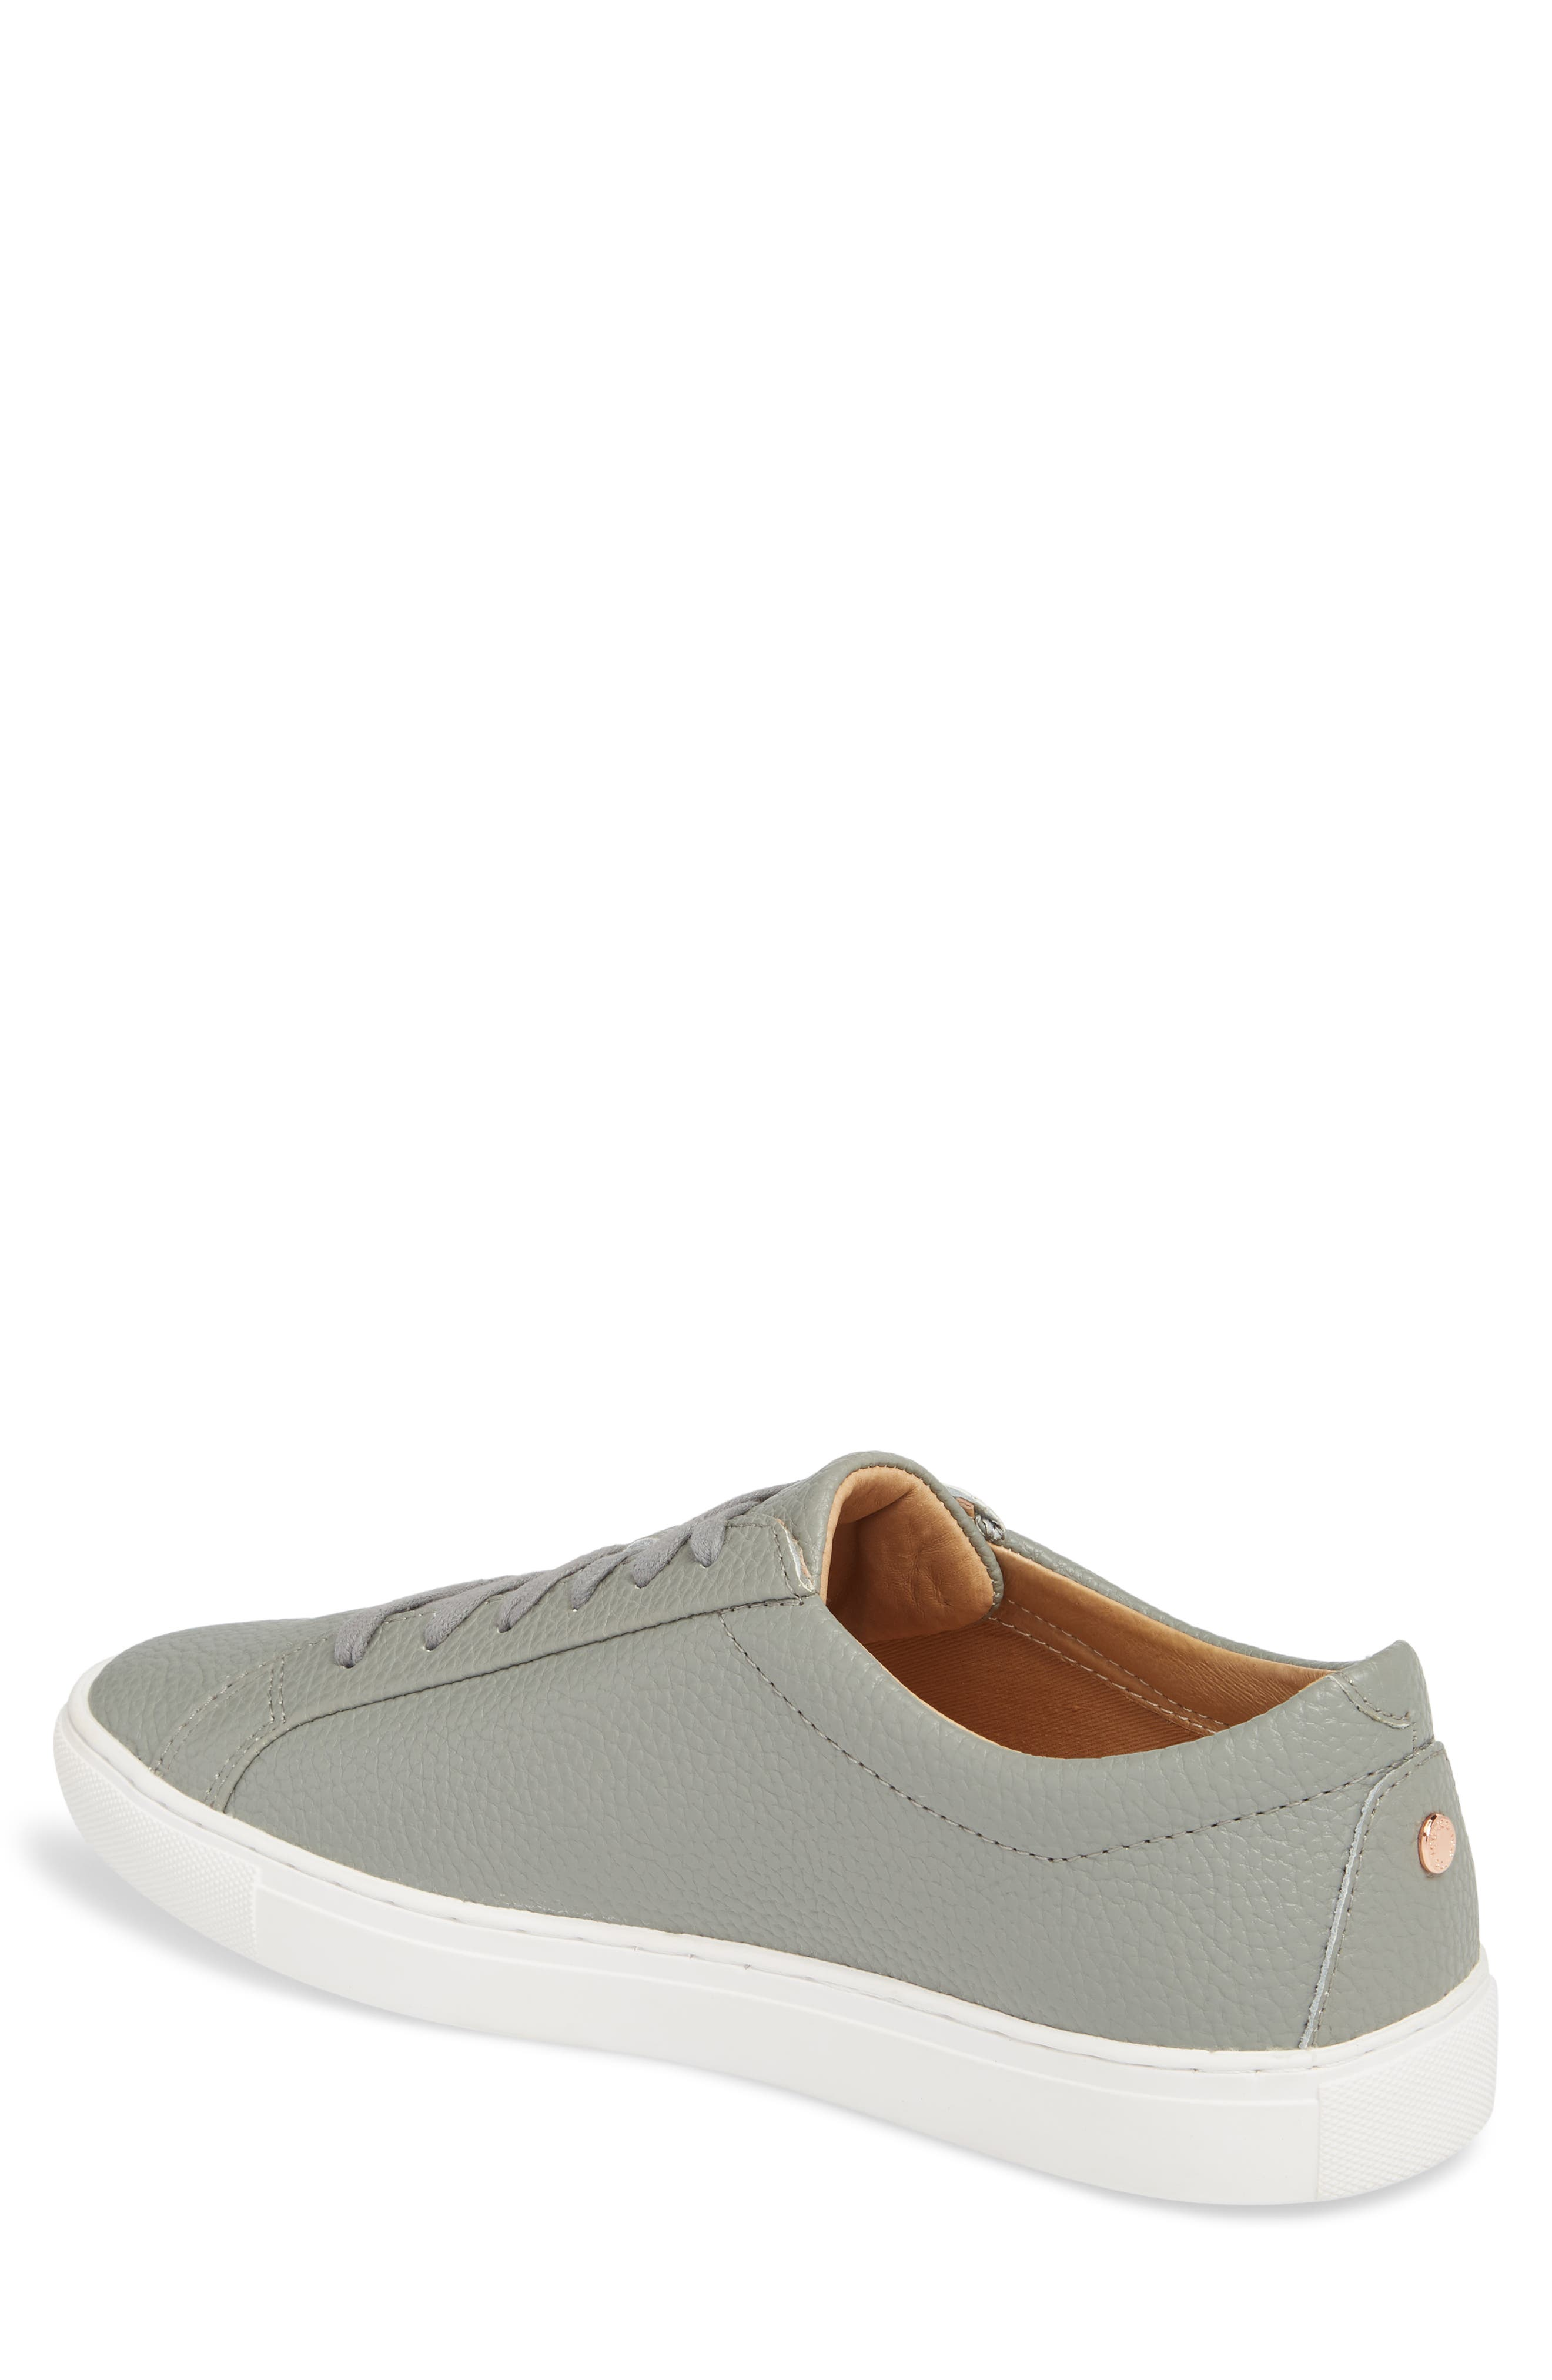 Kennedy Low Top Sneaker,                             Alternate thumbnail 2, color,                             RIVER ROCK LEATHER